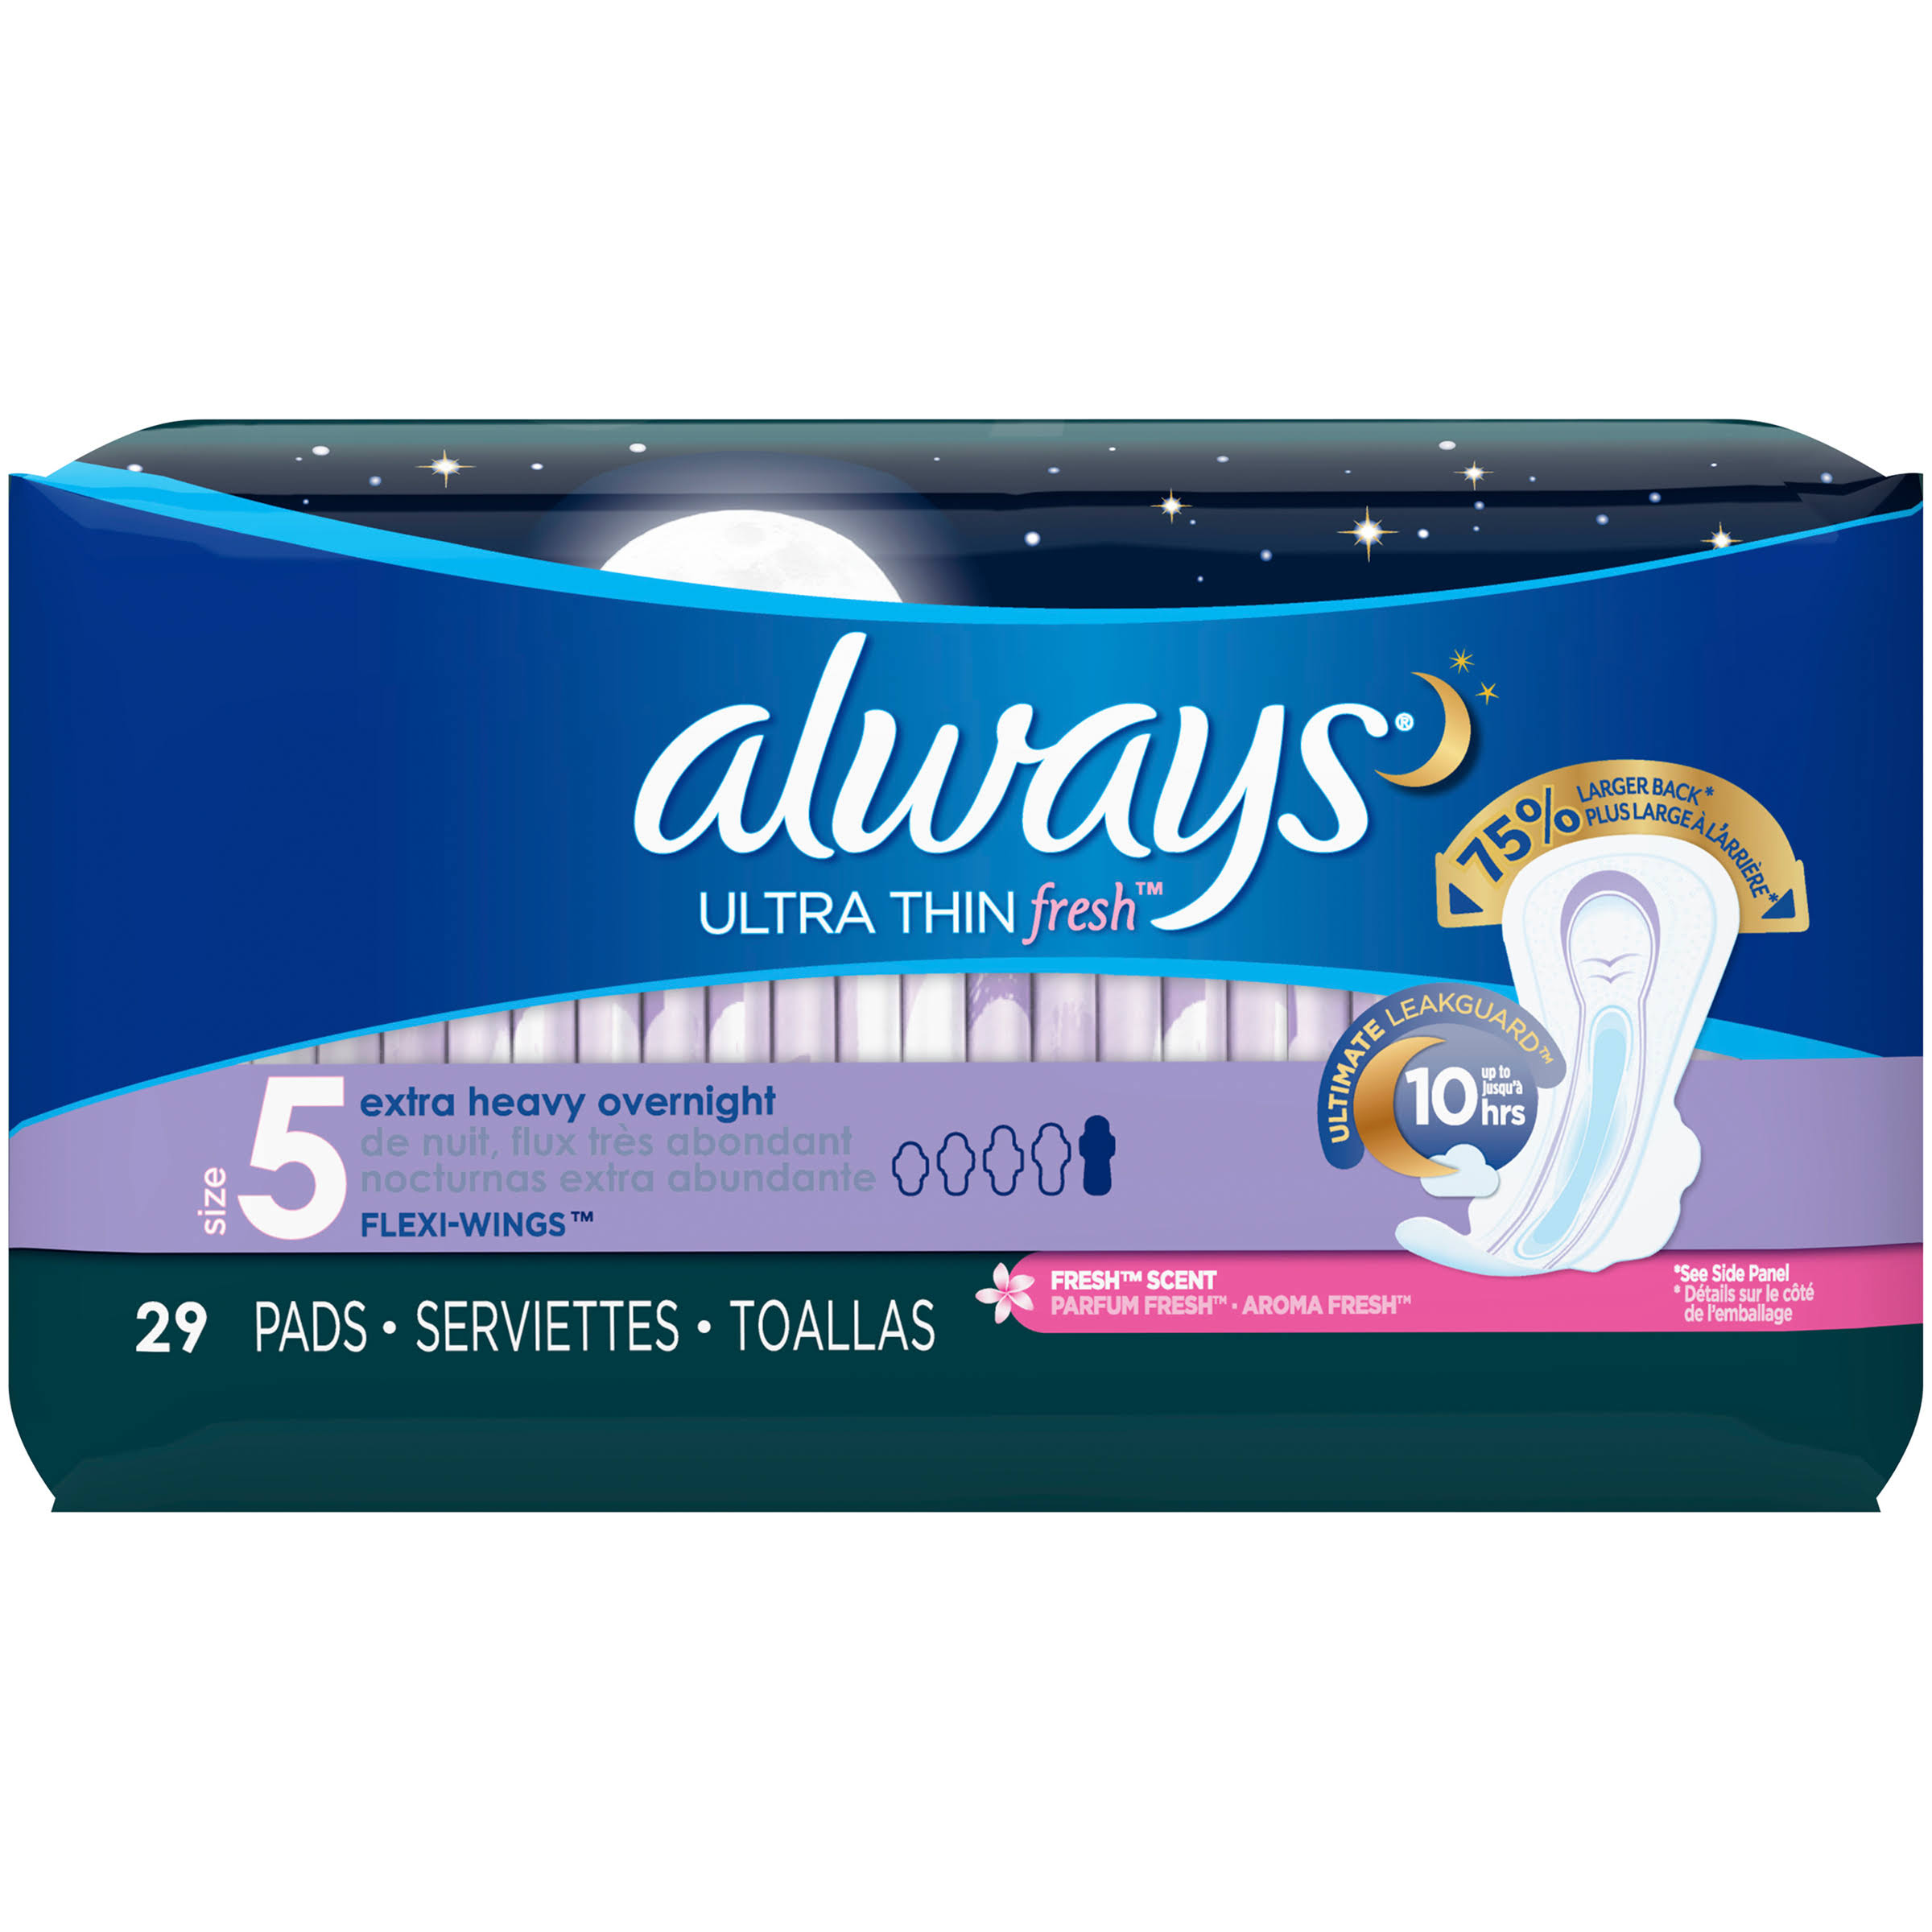 Always Ultra Thin Fresh Pads, Extra Heavy Overnight, Flexi-Wings, Parfum Fresh - 29 pads